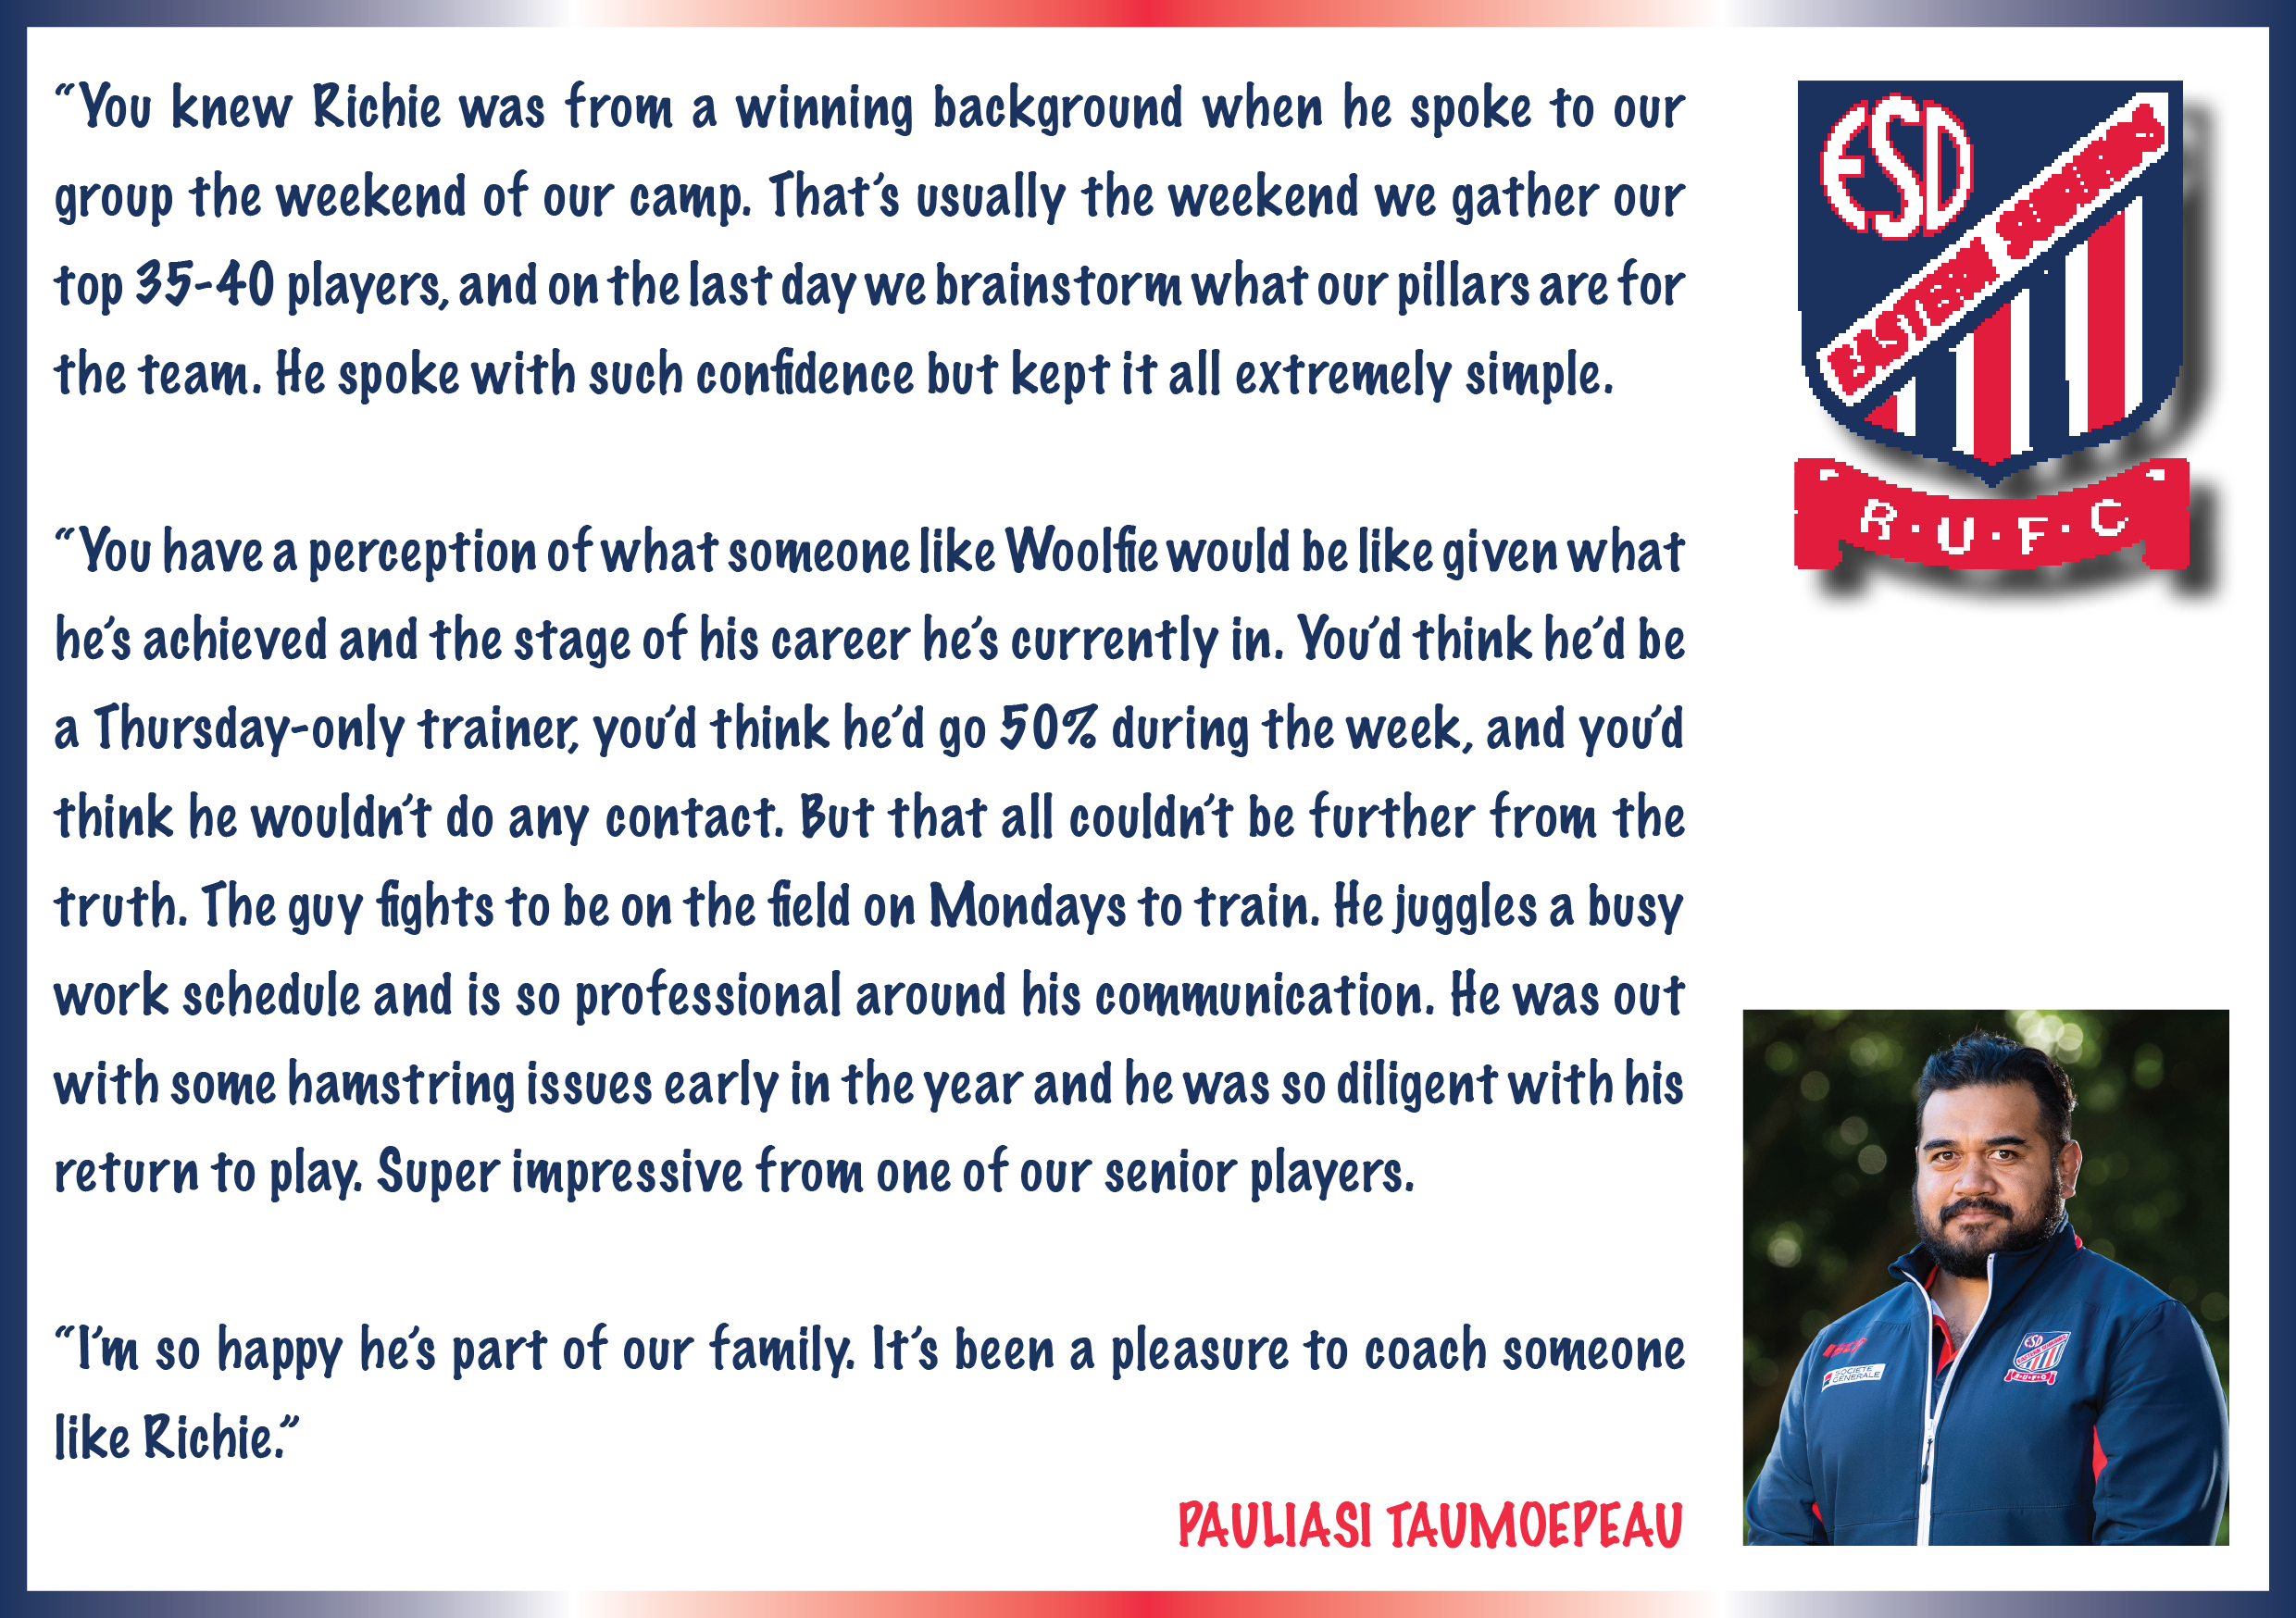 Pauli quote on Richie Woolf